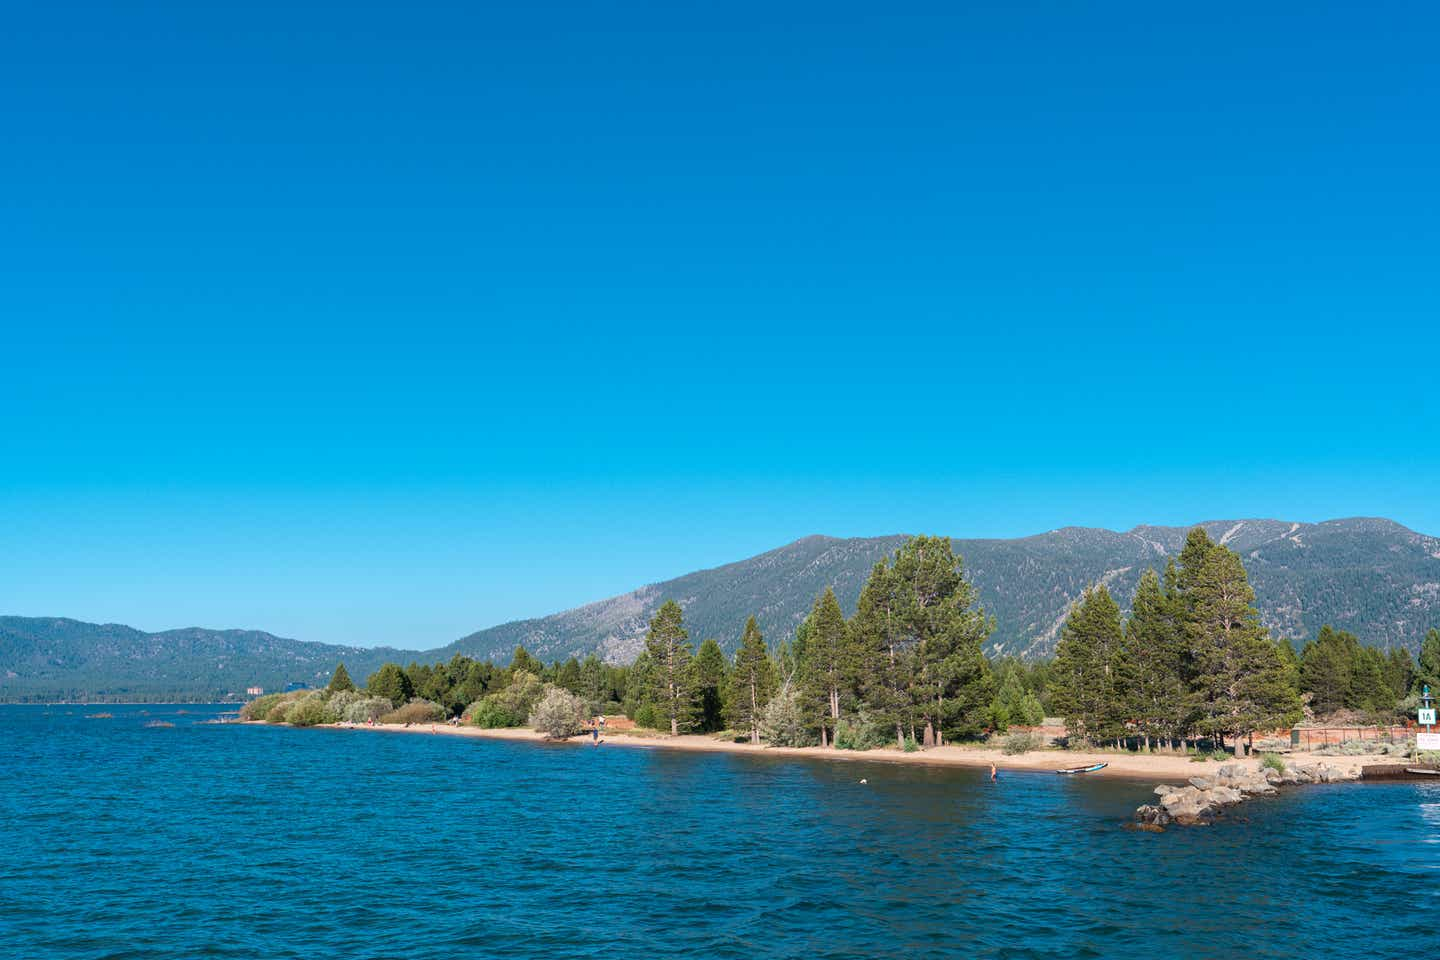 A view of the Lake Tahoe mountains.